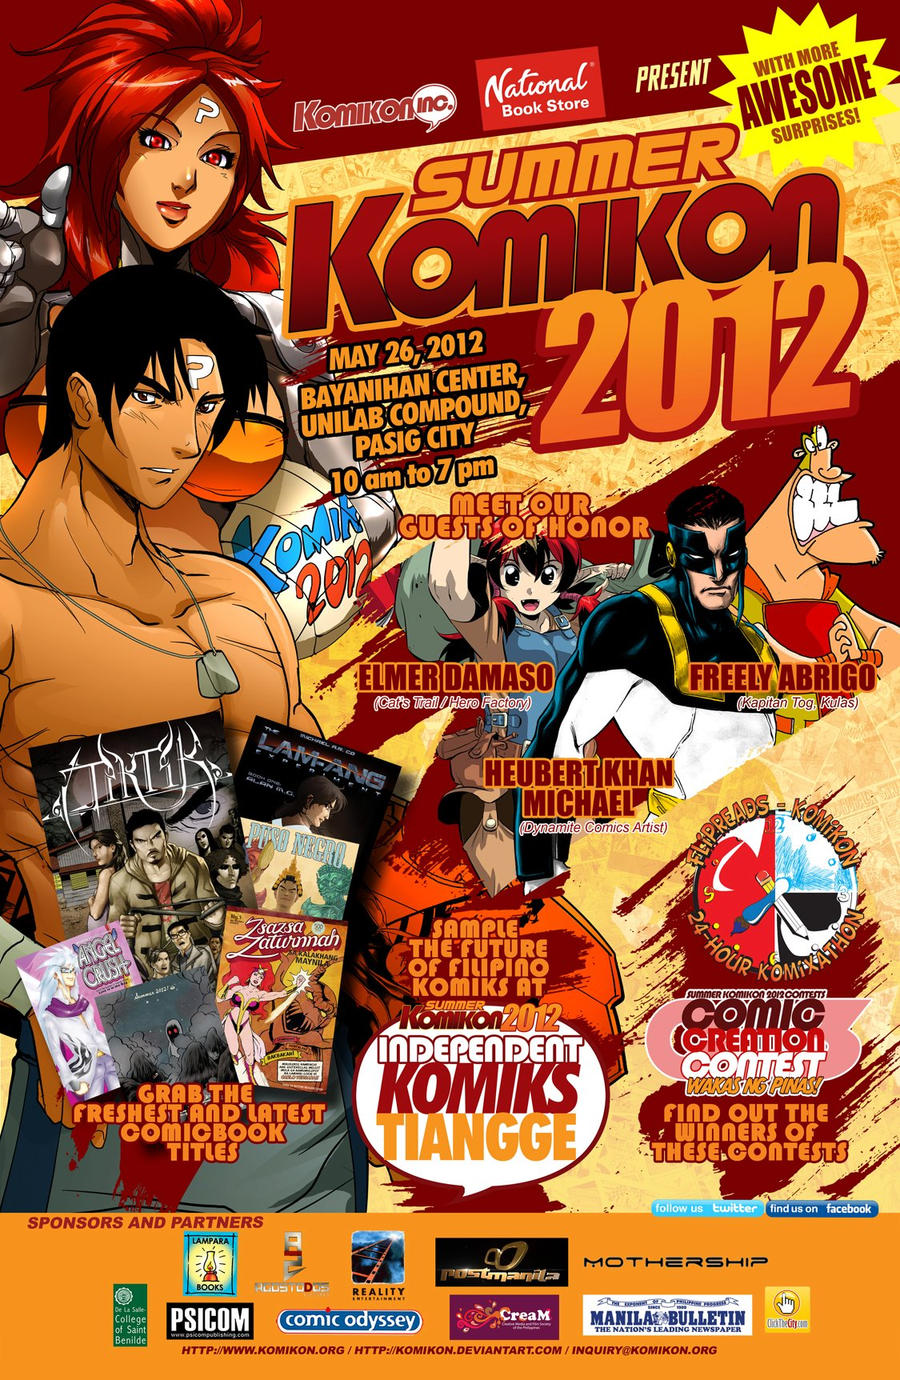 Official Poster - Summer KOMIKON 2012 by komikon